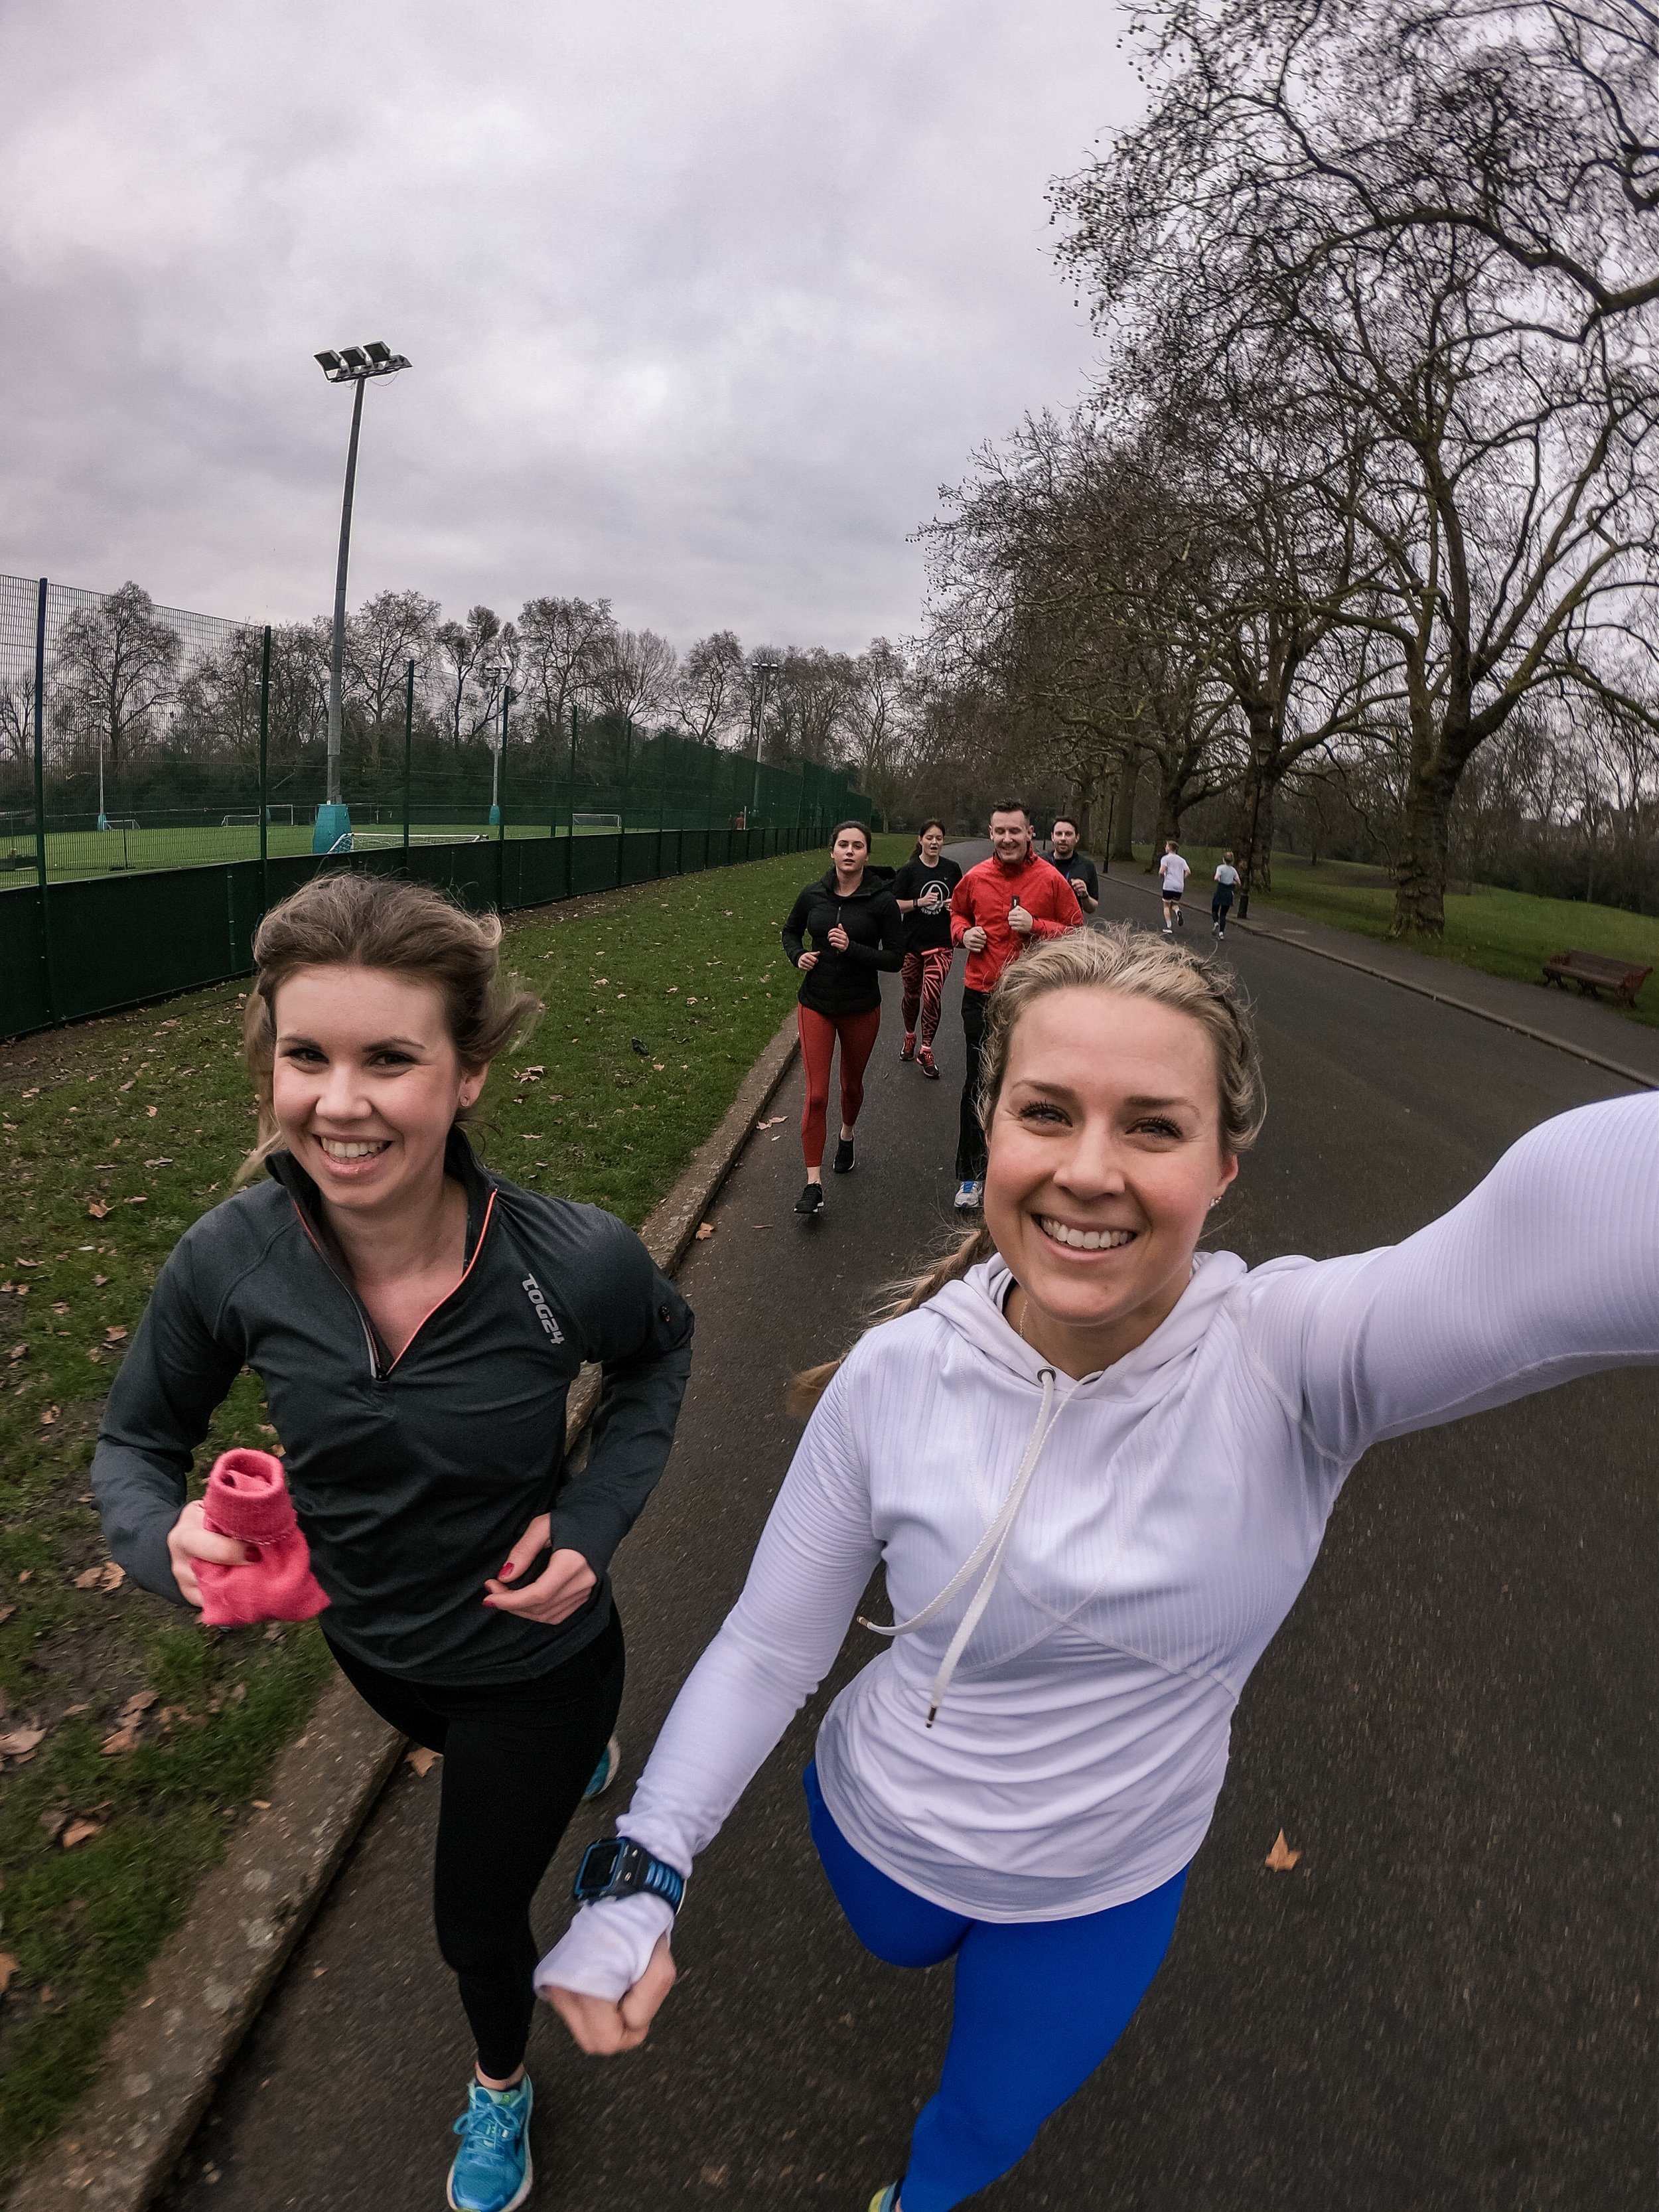 Training in Battersea Park, London